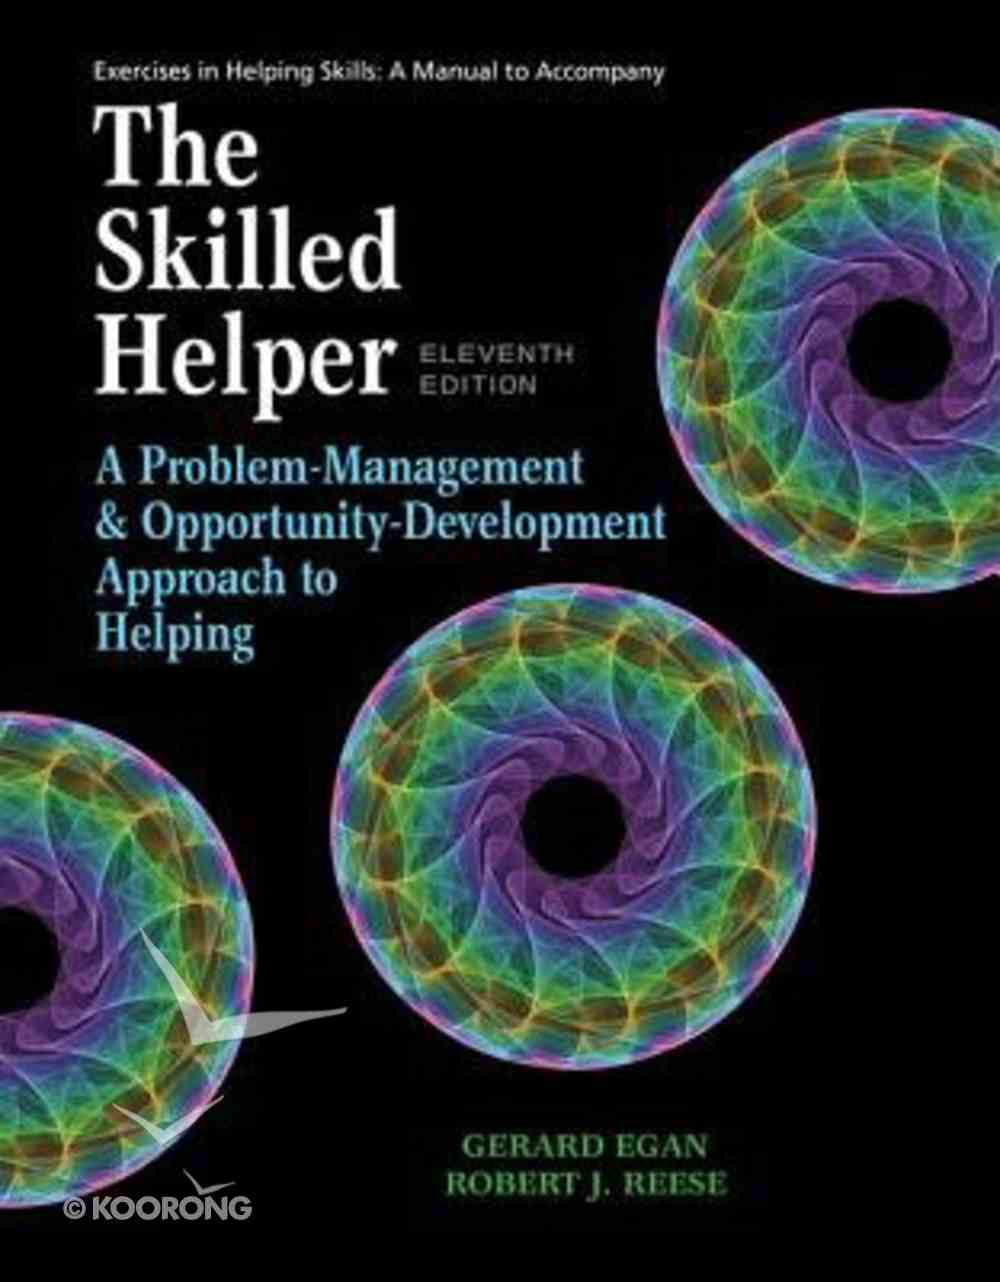 Exercises in Helping Skills (11th Edition) Paperback